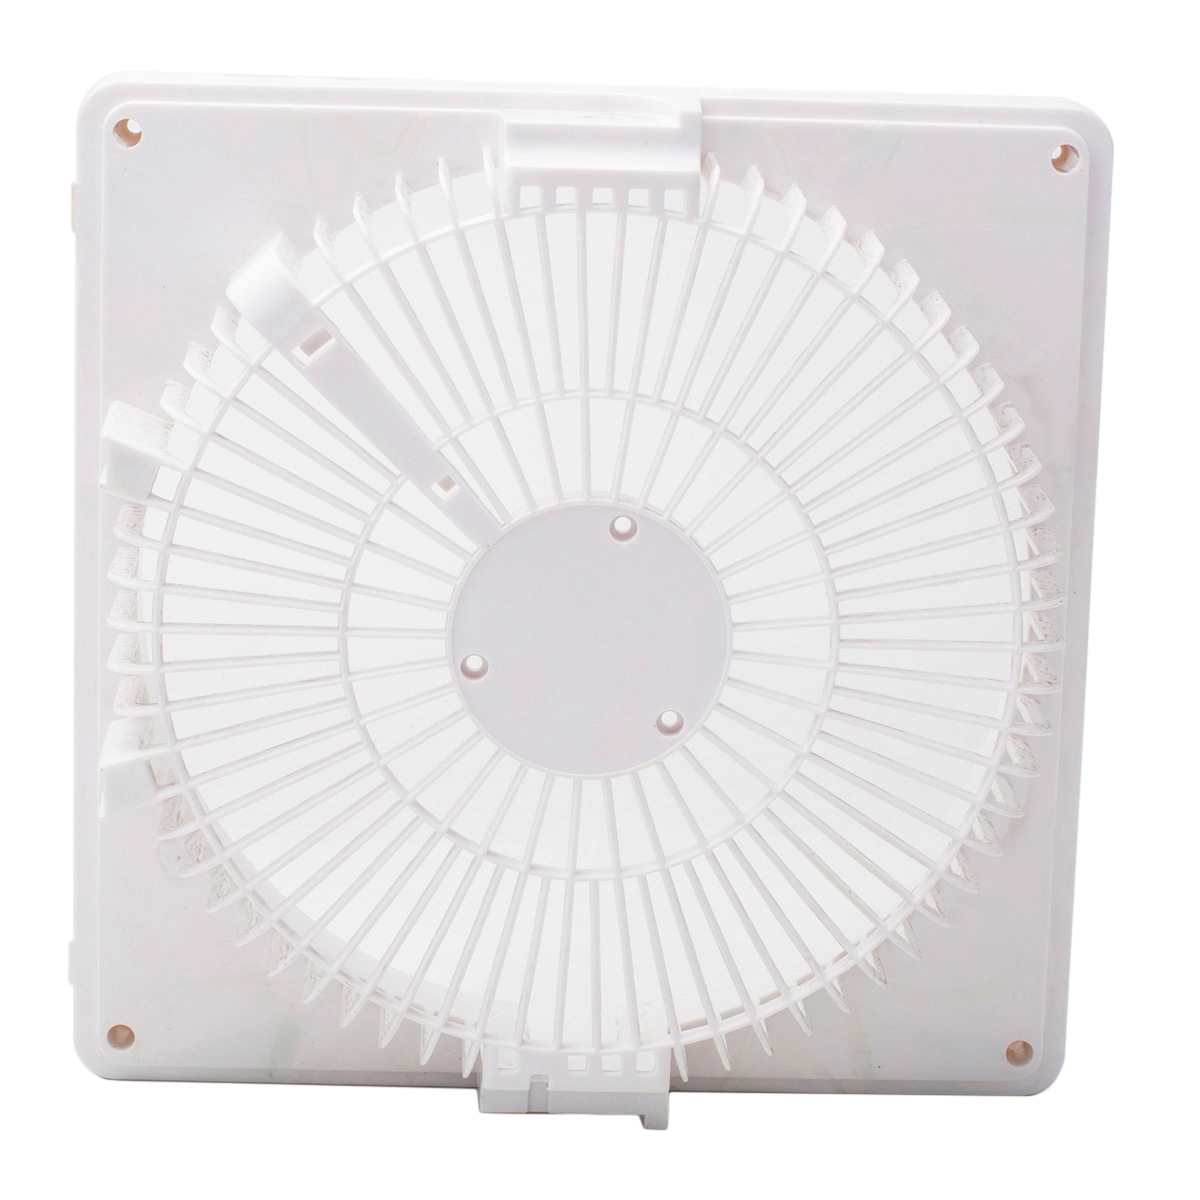 customized home appliance portable electric fan protector cover plastic injection molding